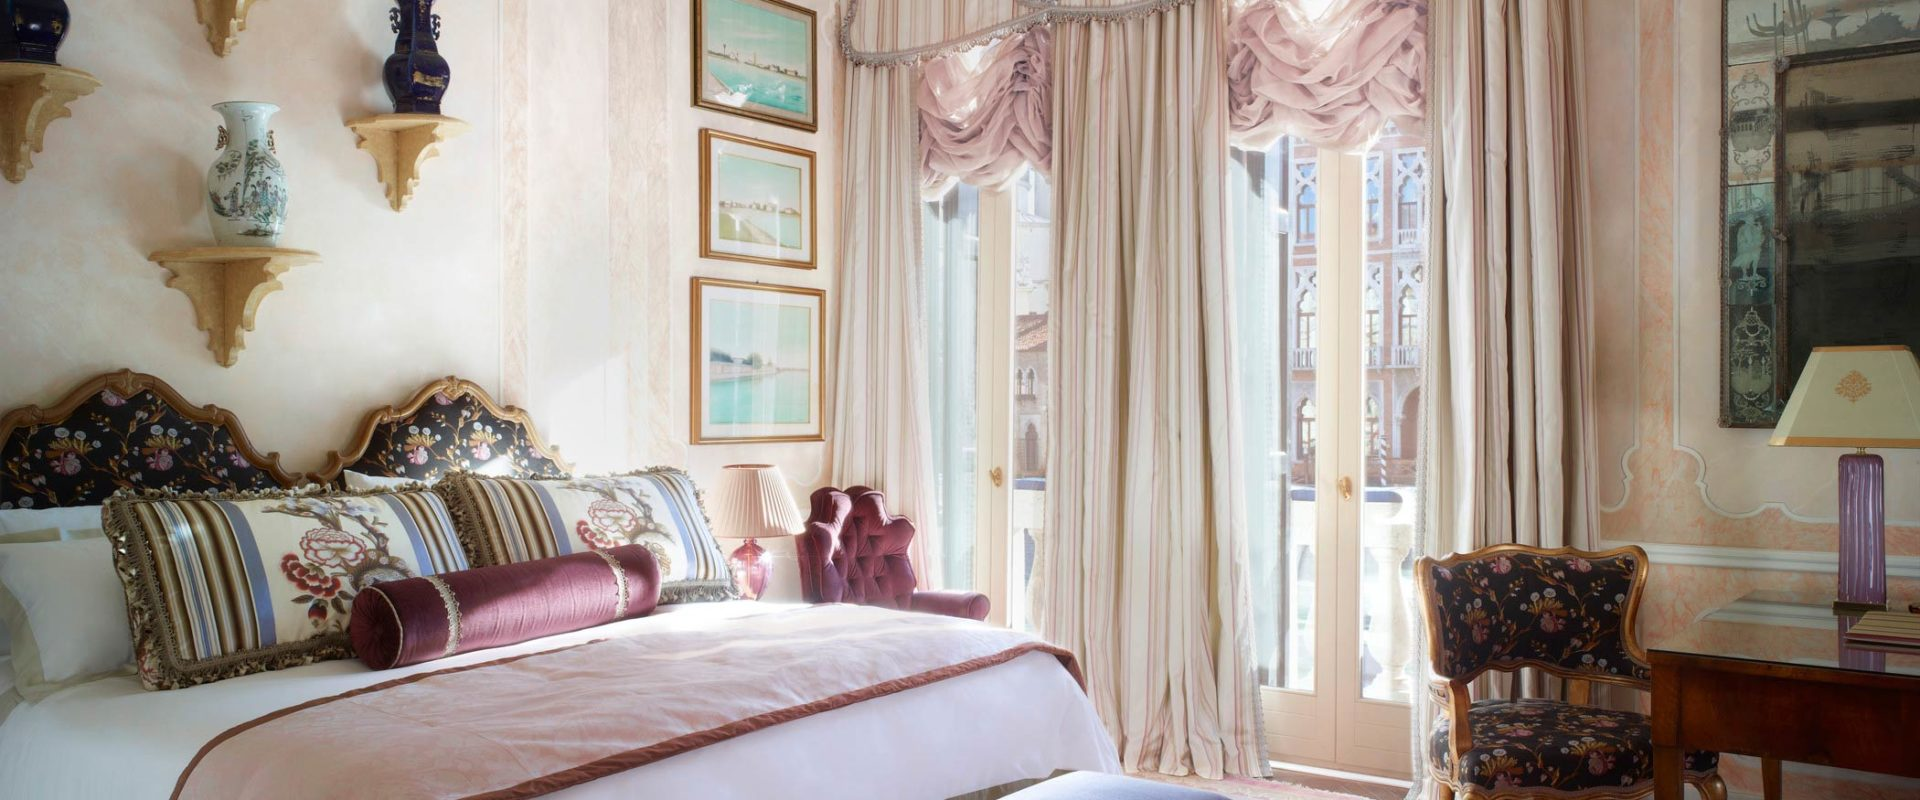 The-Griitti-Palace-Venice-Somerset-Maugham-Royal-Suite